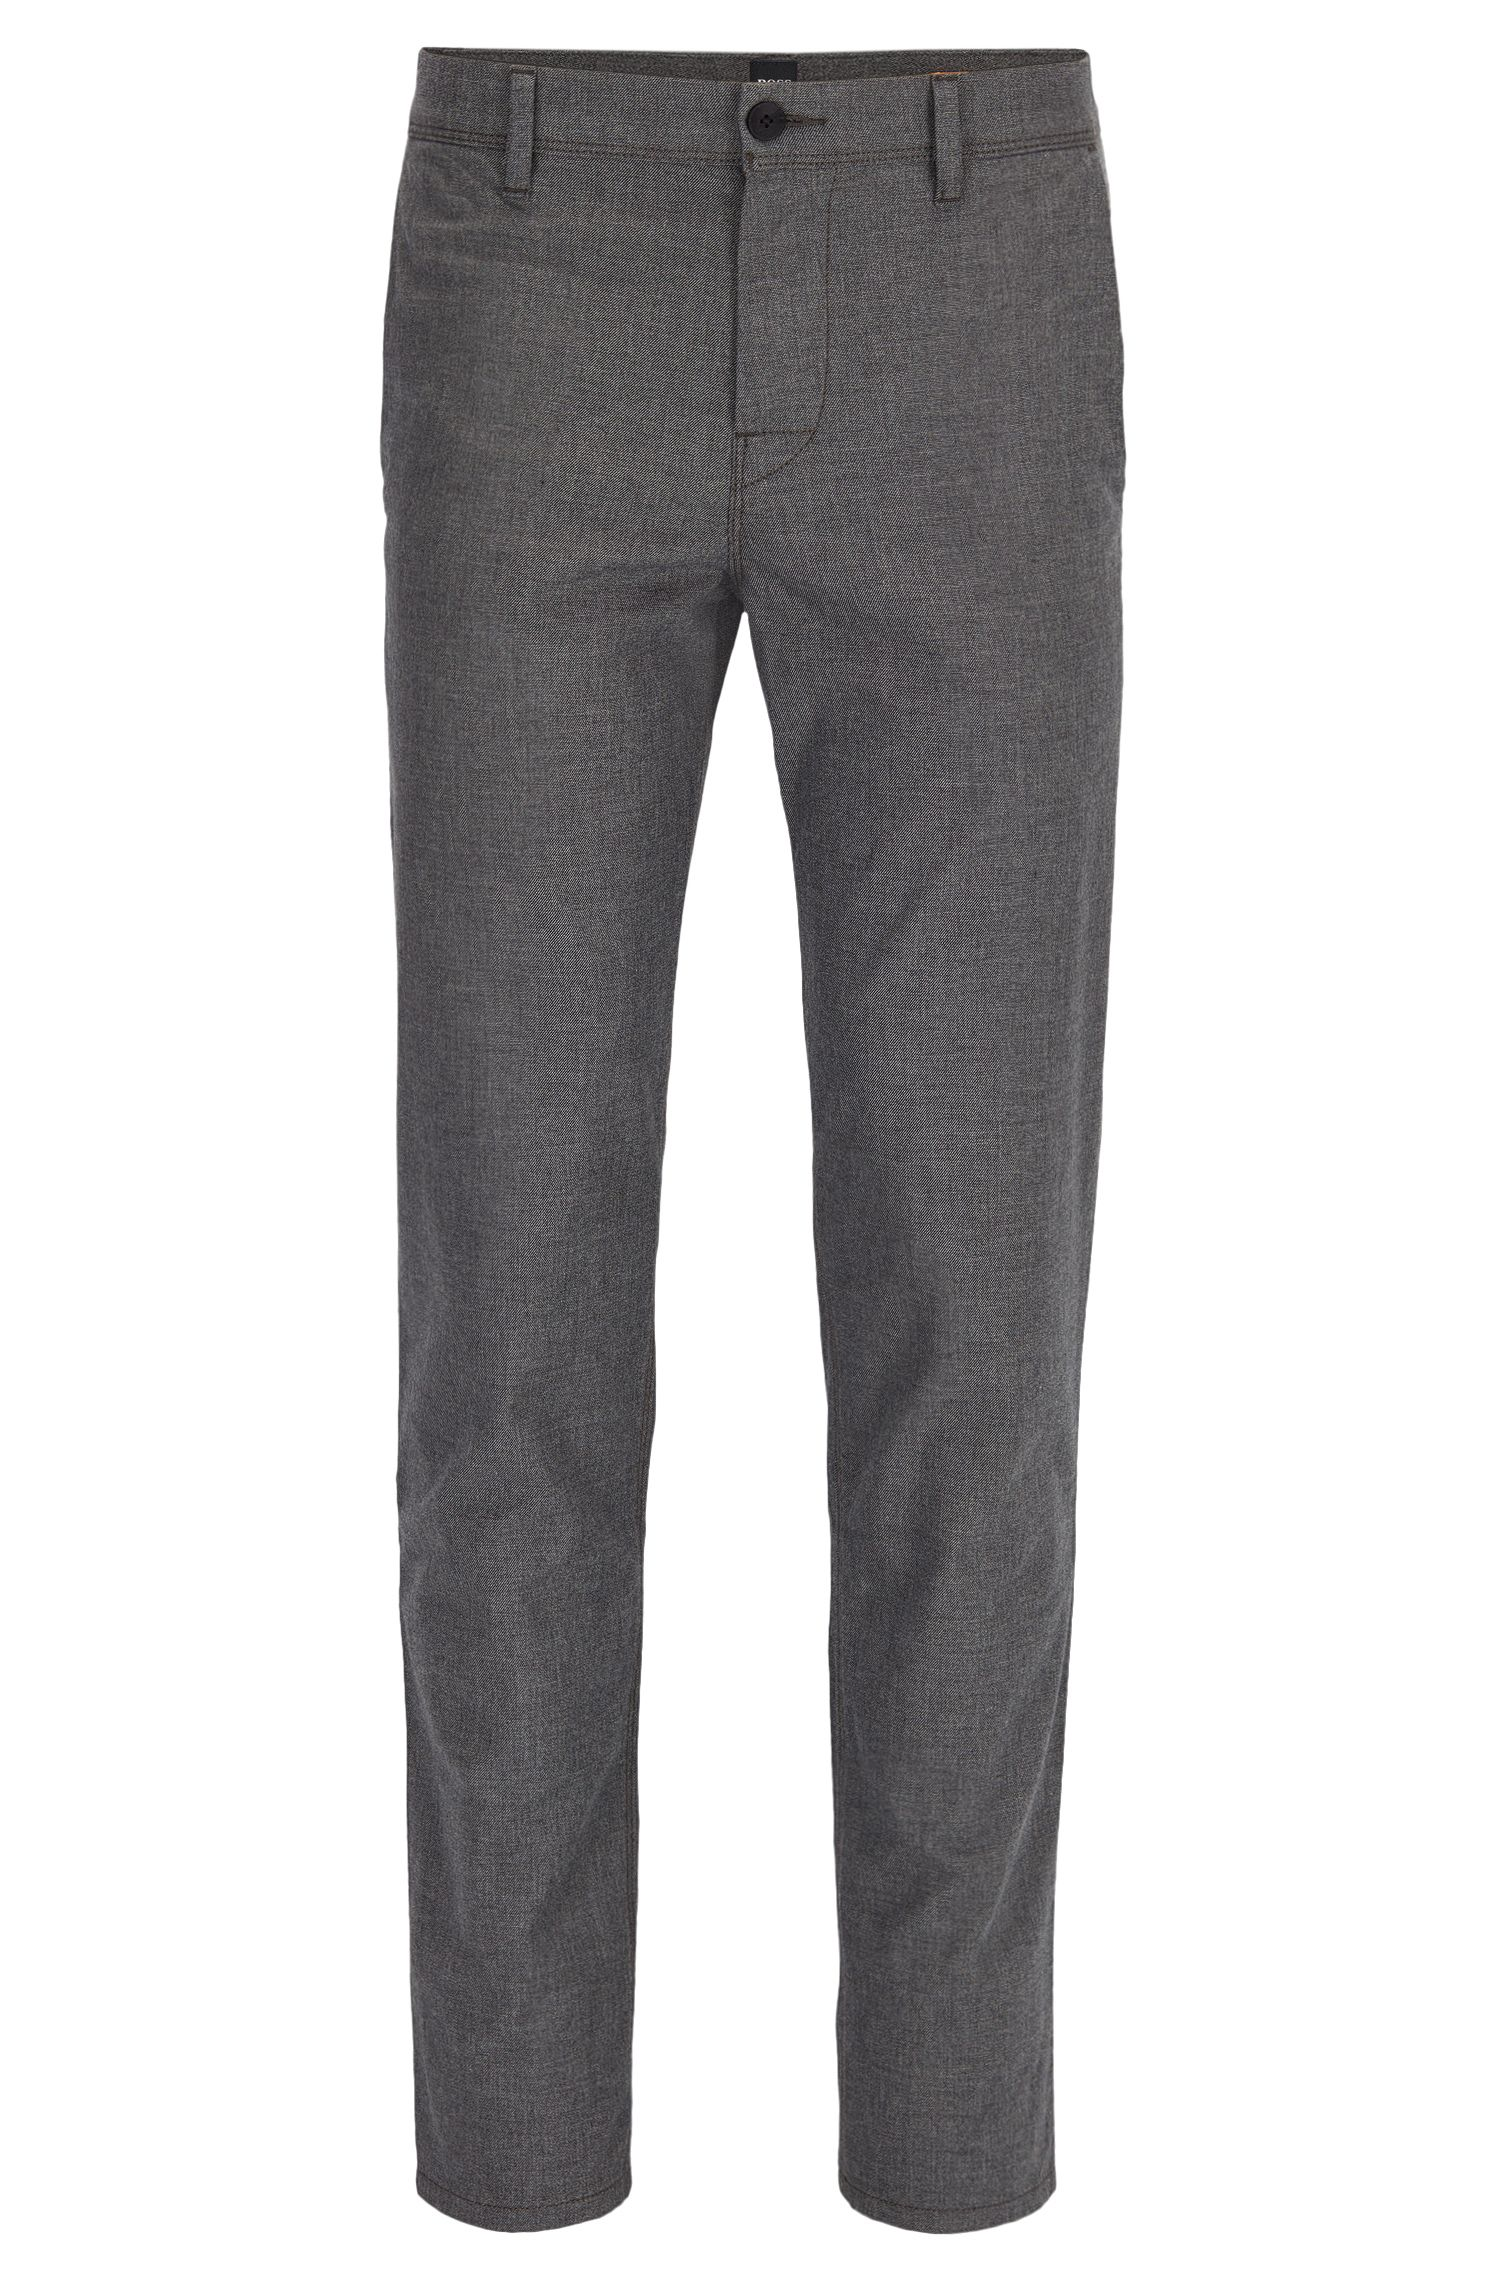 Pantalon Tapered Fit en coton stretch légèrement délavé